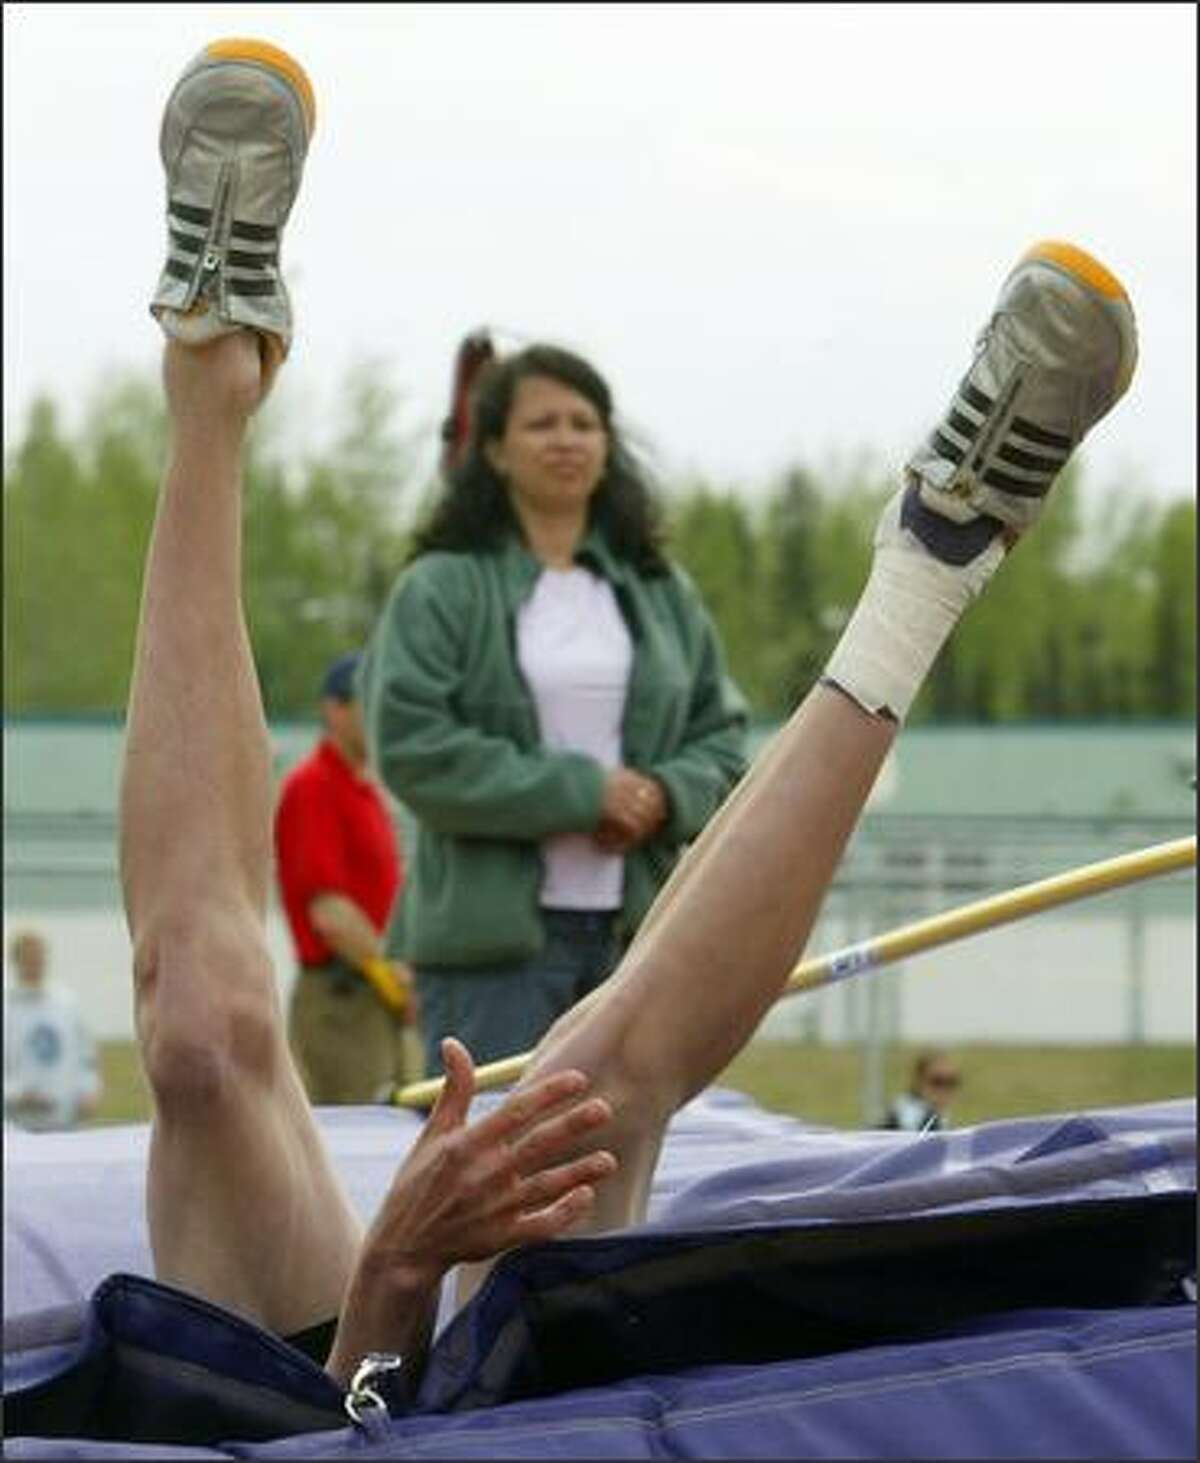 Service's Ben Jackson sinks into the mat while competing in the boys 4A high jump event during the Alaska State High School Track and Field Championships at Lathrop High School in Fairbanks, Alaska. Jackson won the event. (AP Photo/Eric Engman)